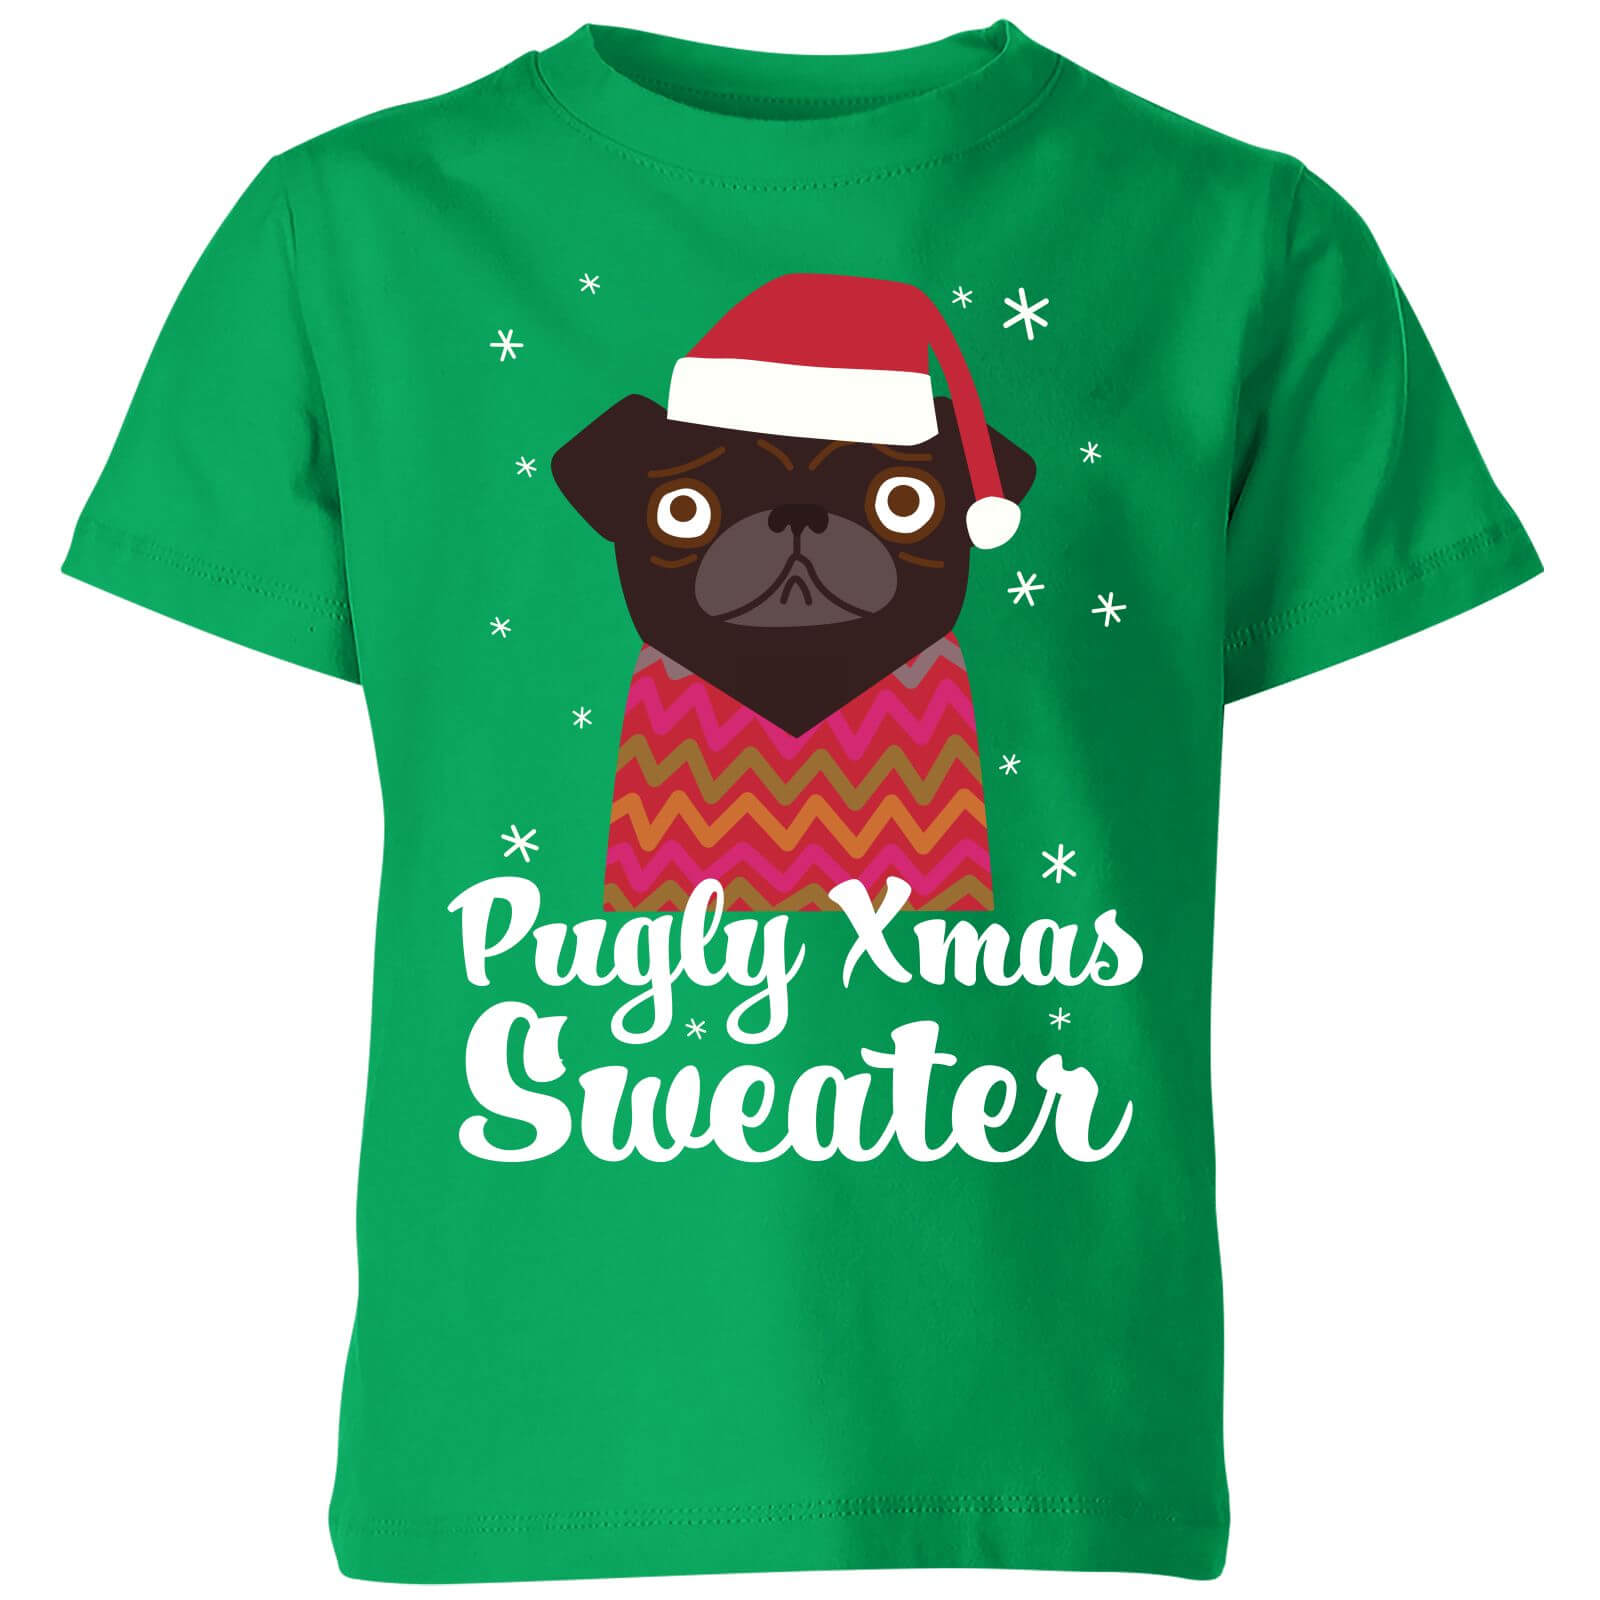 Pugly xmas Sweater Kids